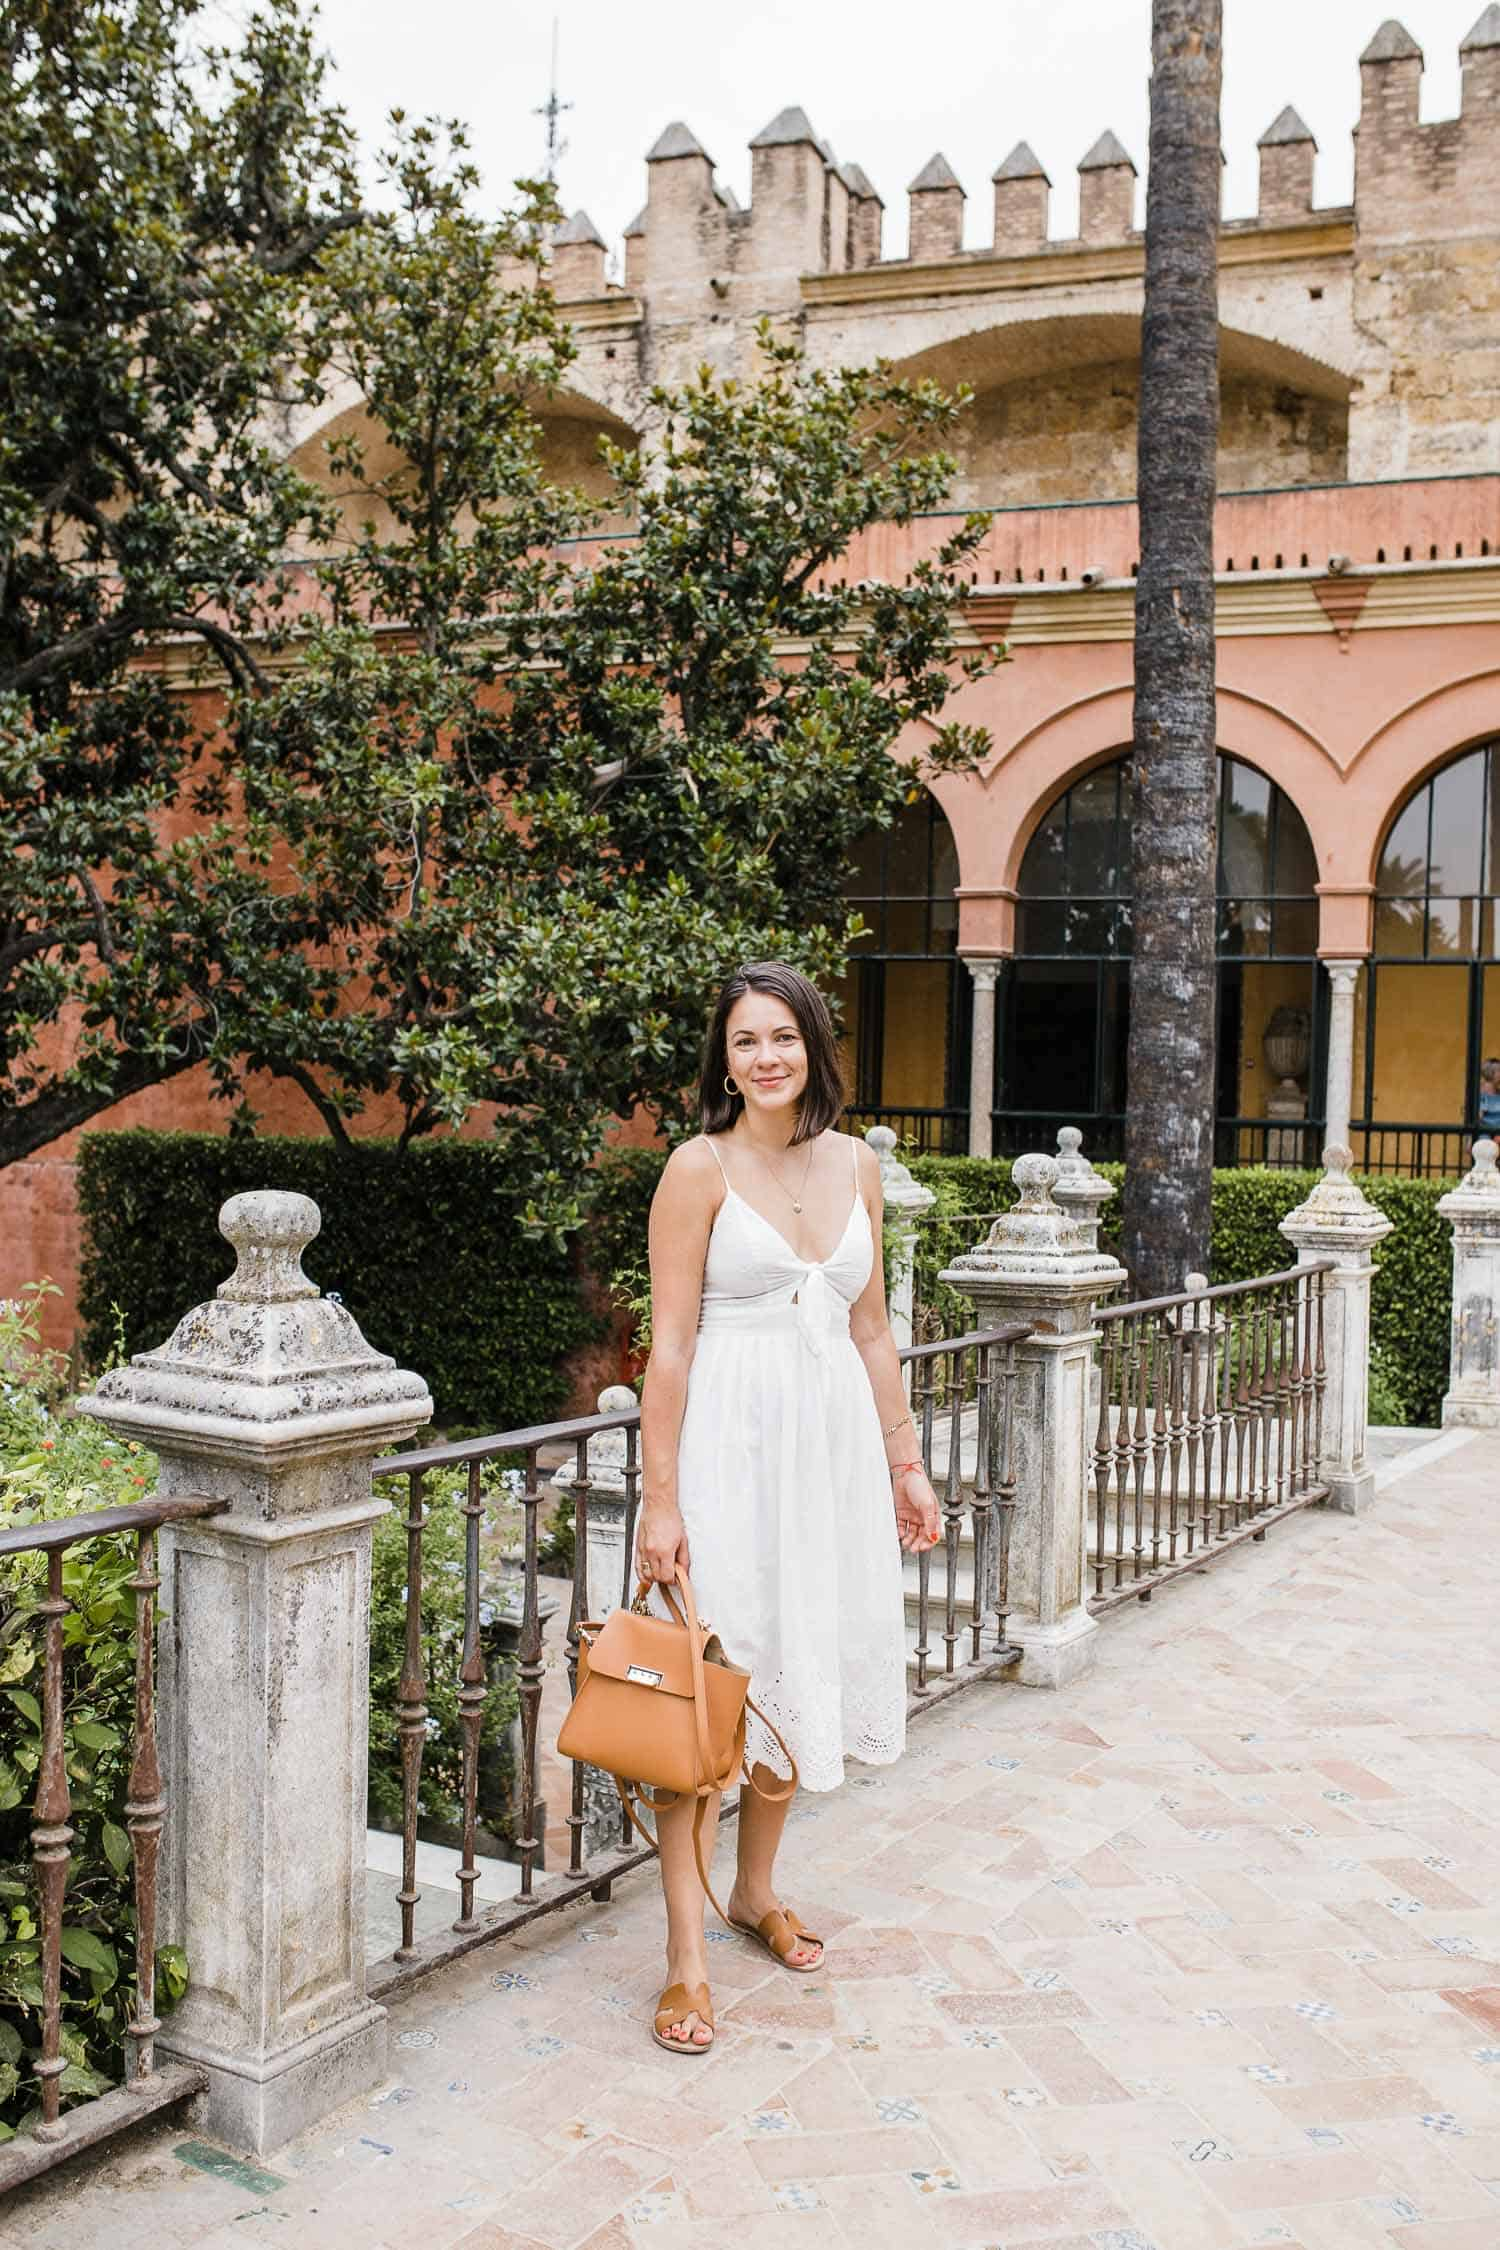 A Day In Sevilla with Jessica